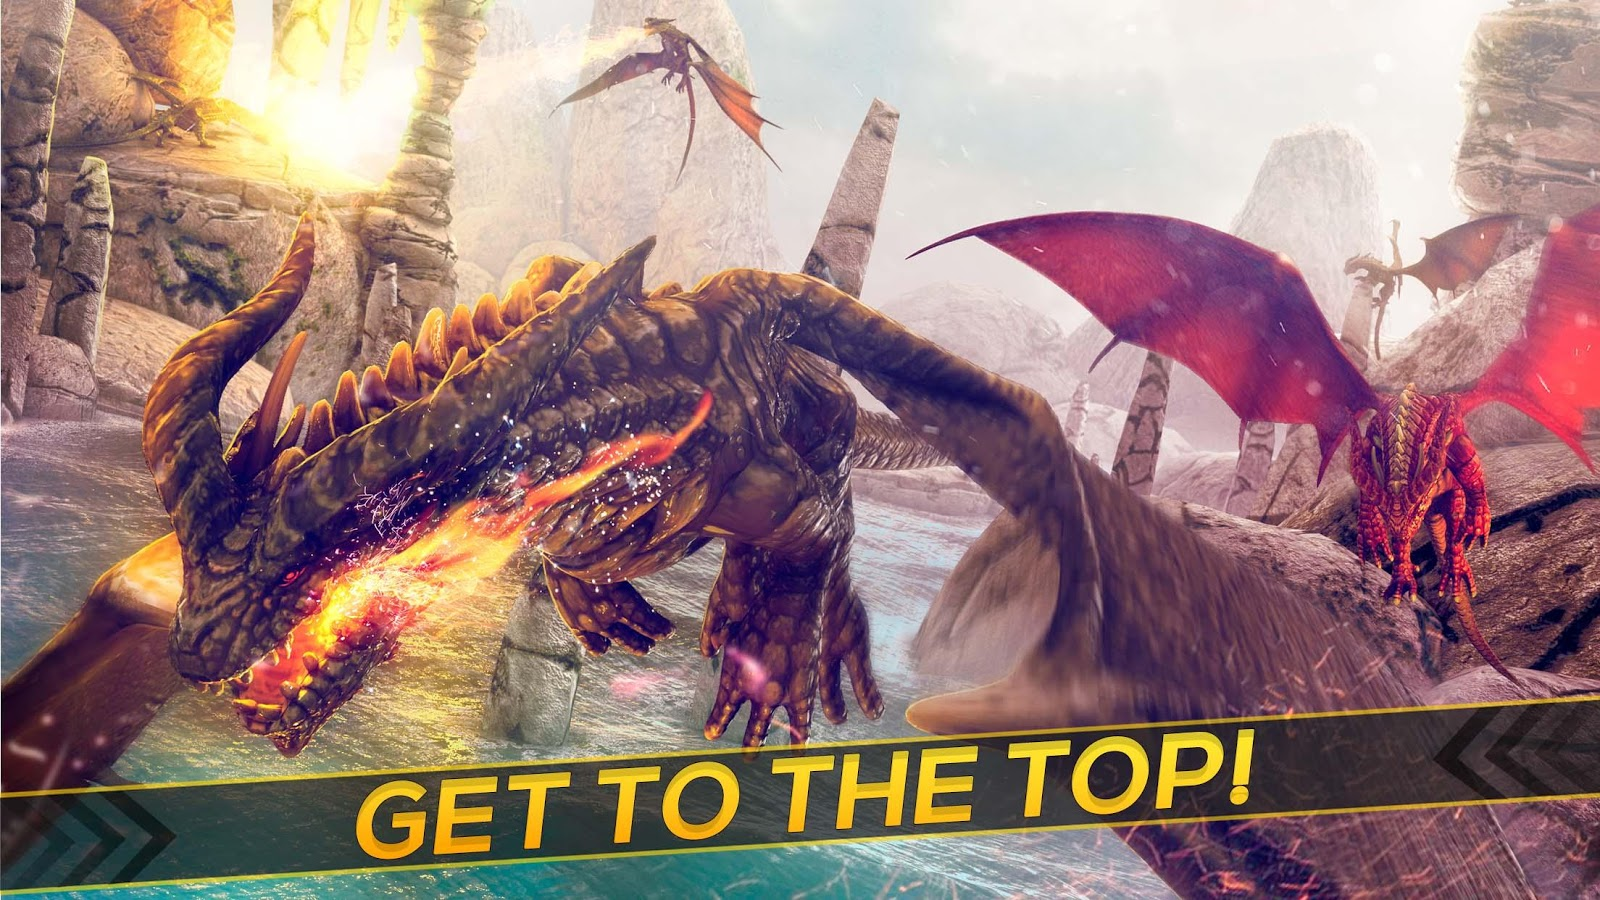 dragon simulator 2017 for free android apps on google play